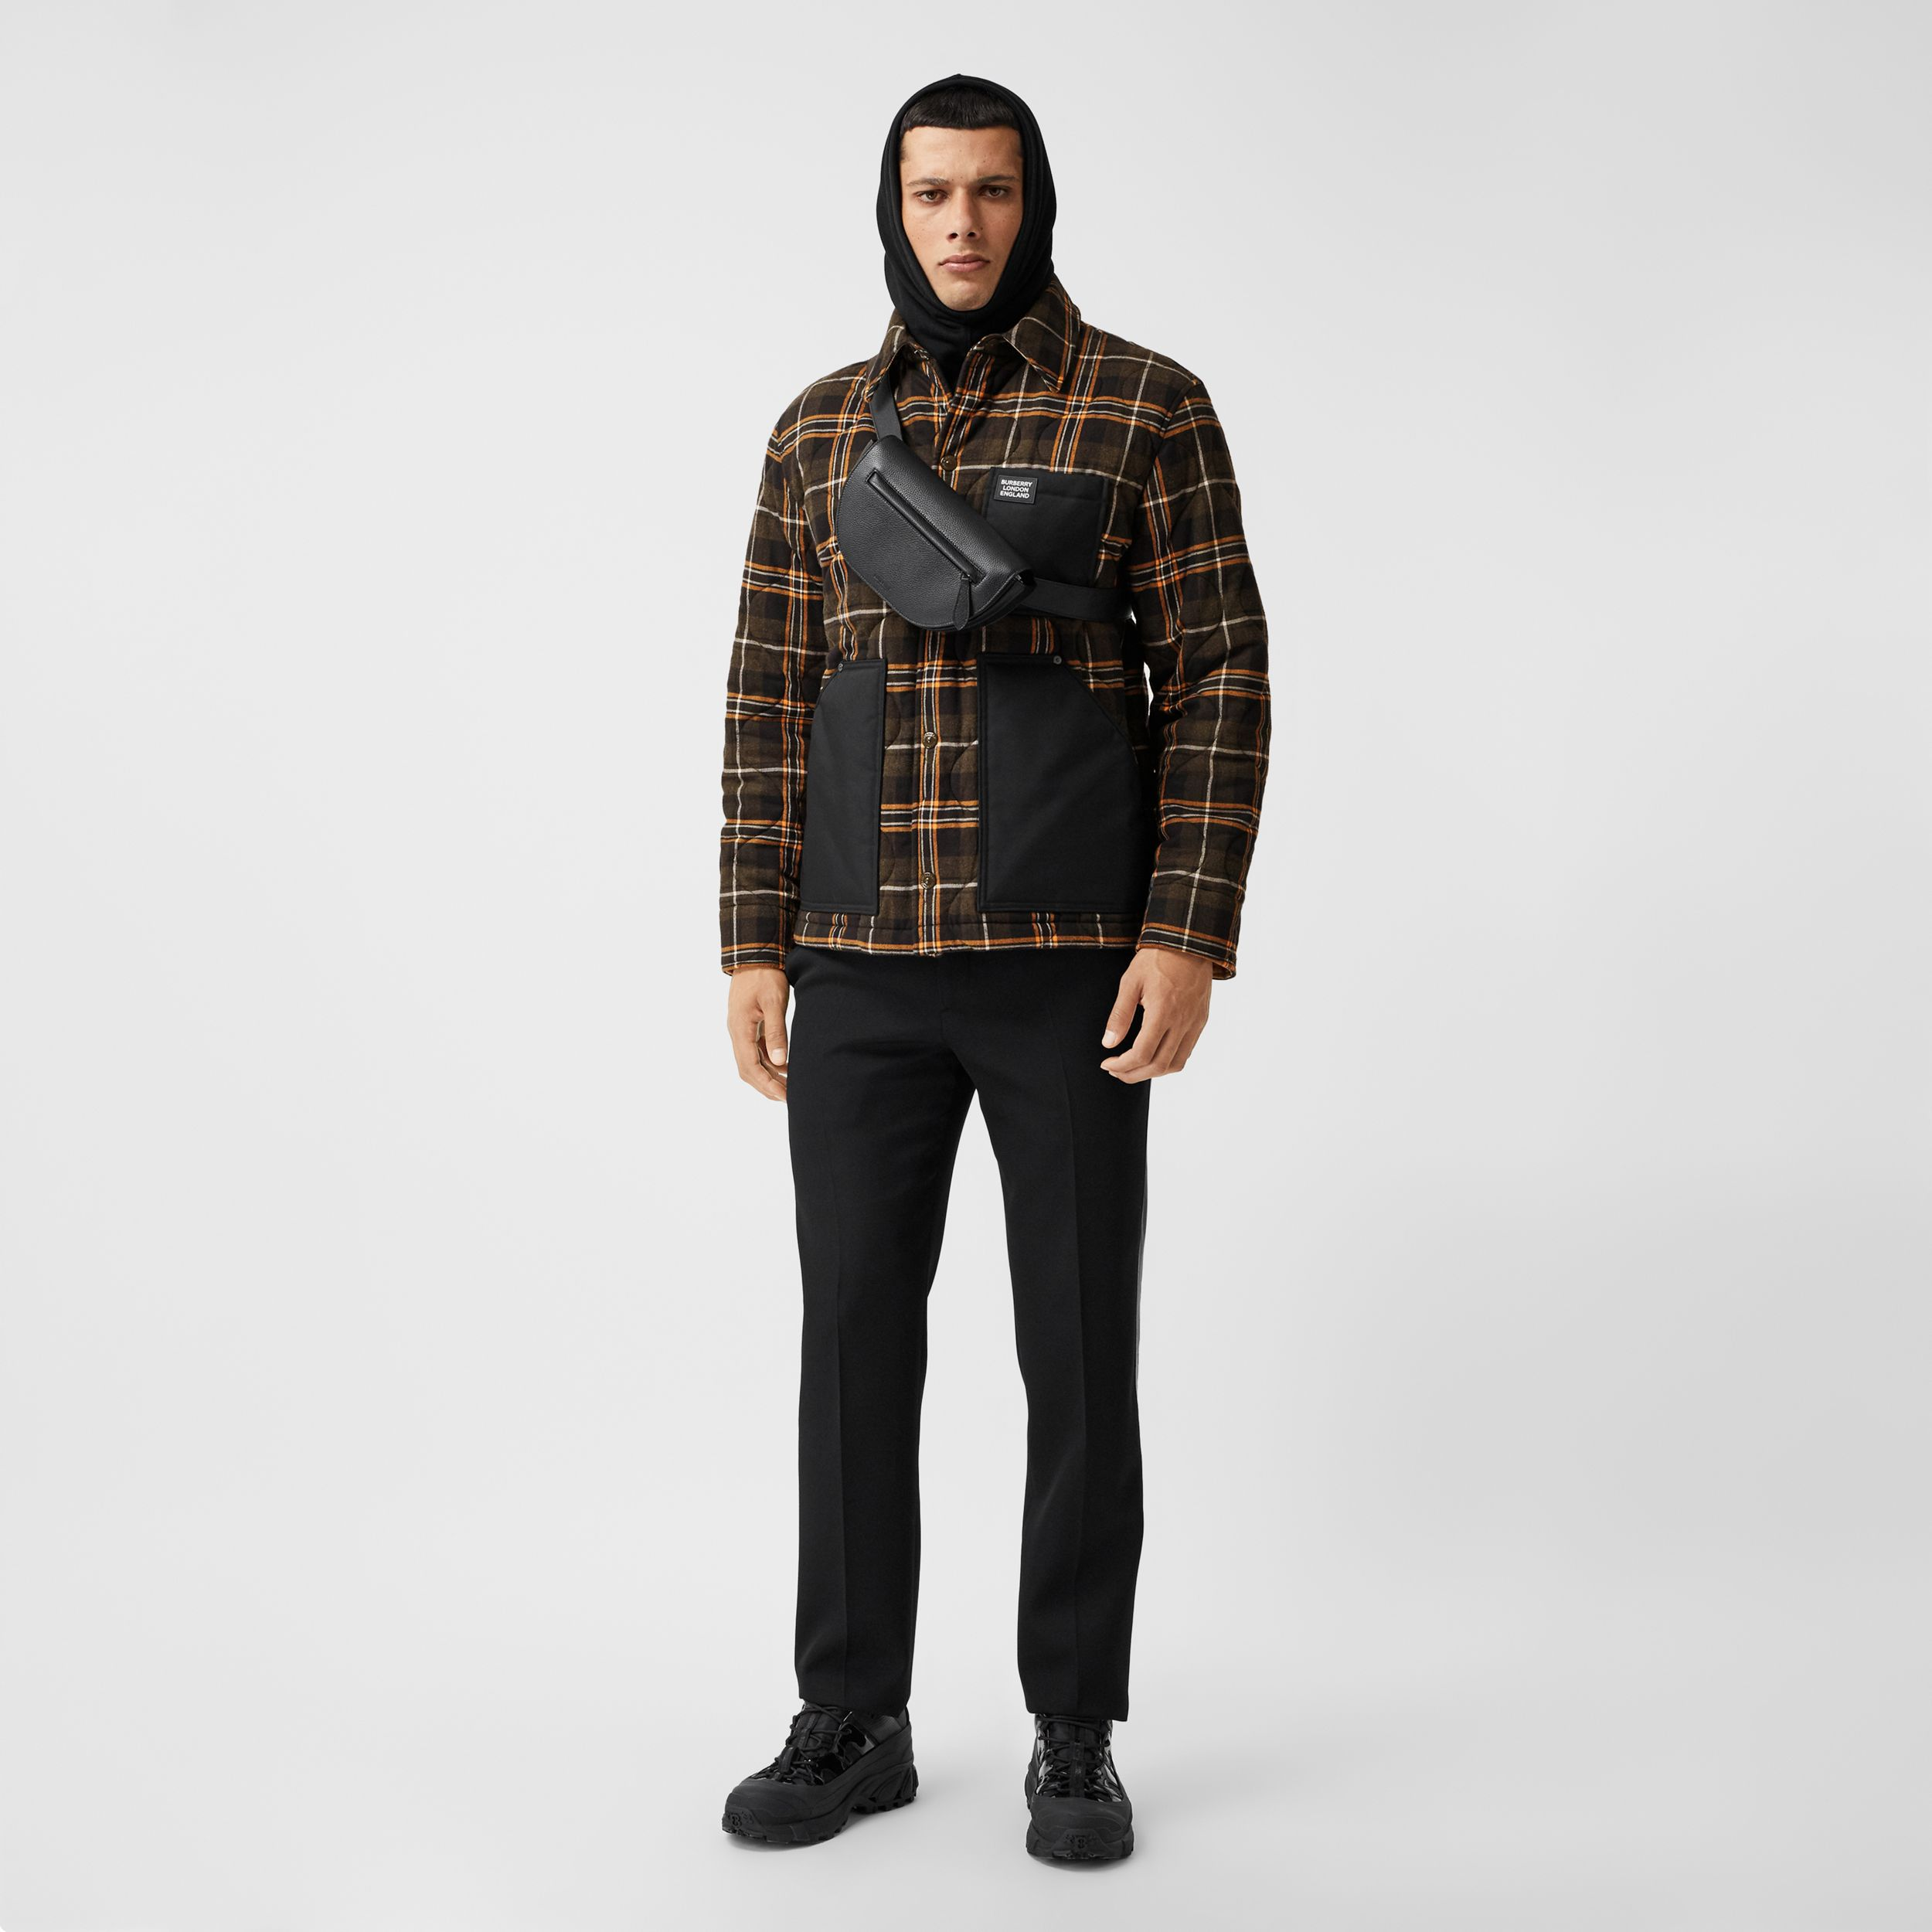 Contrast Pocket Check Cotton Flannel Overshirt in Olive - Men | Burberry Hong Kong S.A.R. - 1